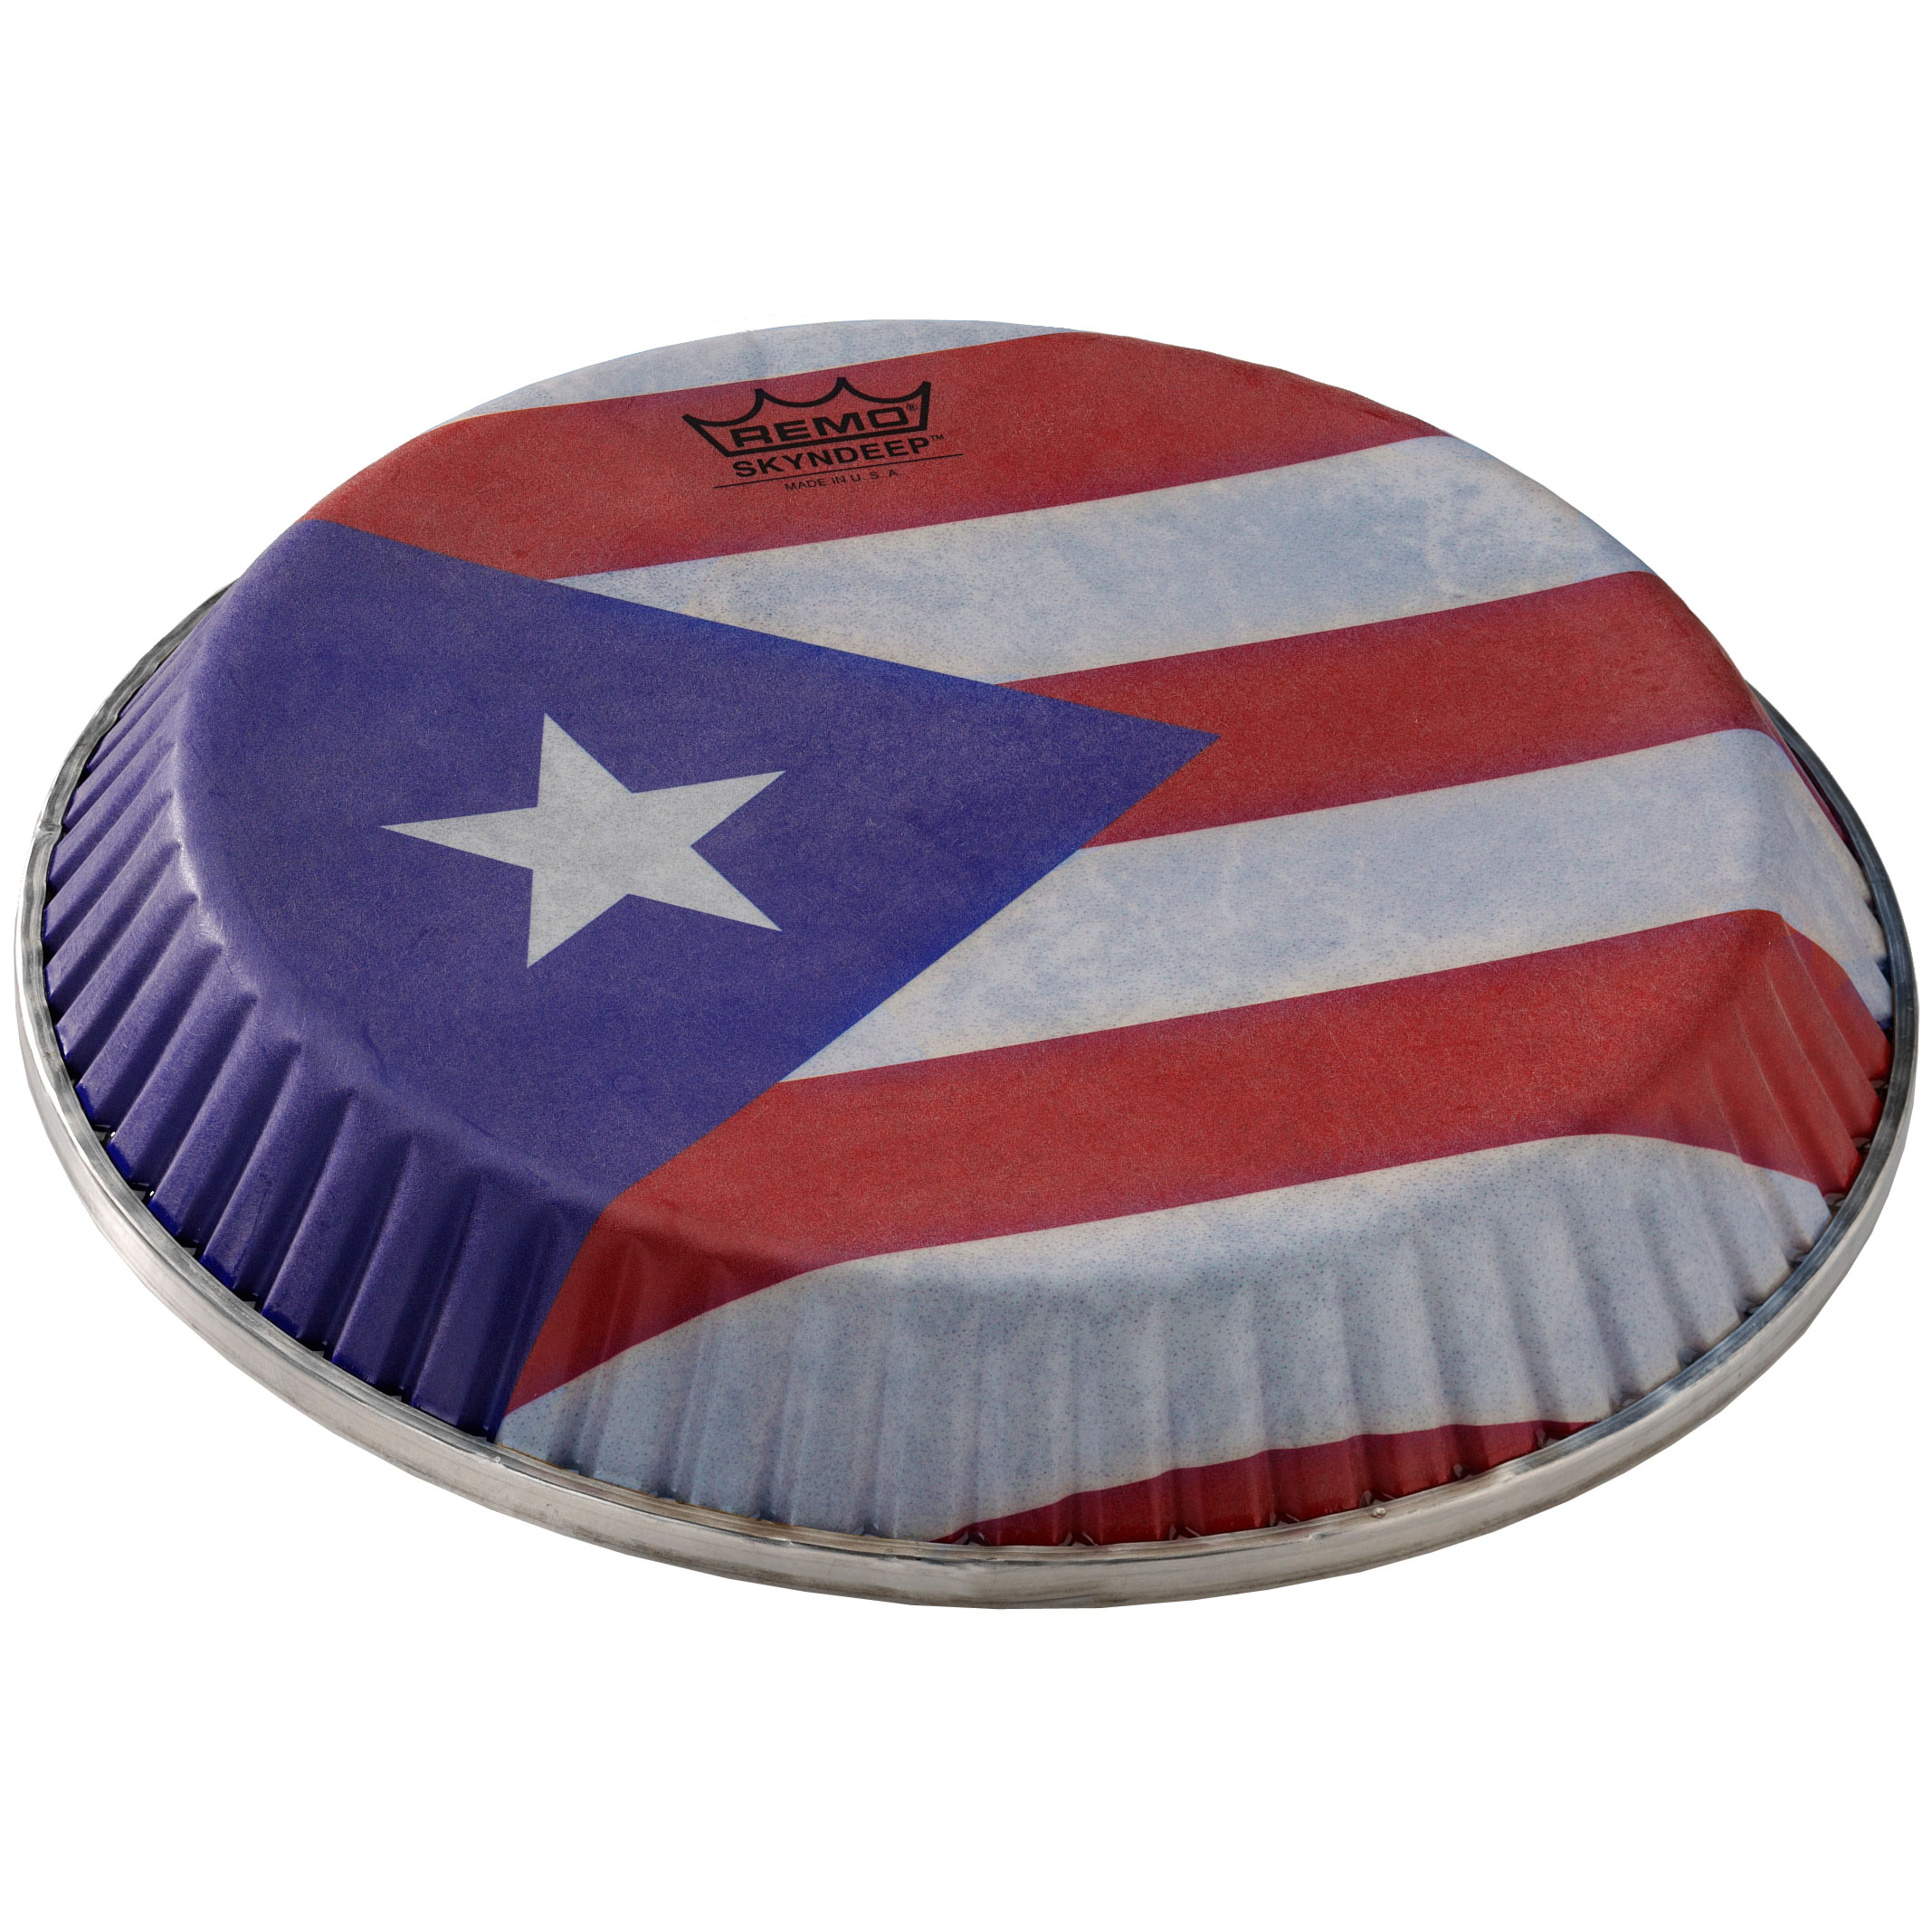 "Remo 12.5"" Symmetry Skyndeep Conga Drum Head (D3 Collar) with Puerto Rican Flag Graphic"